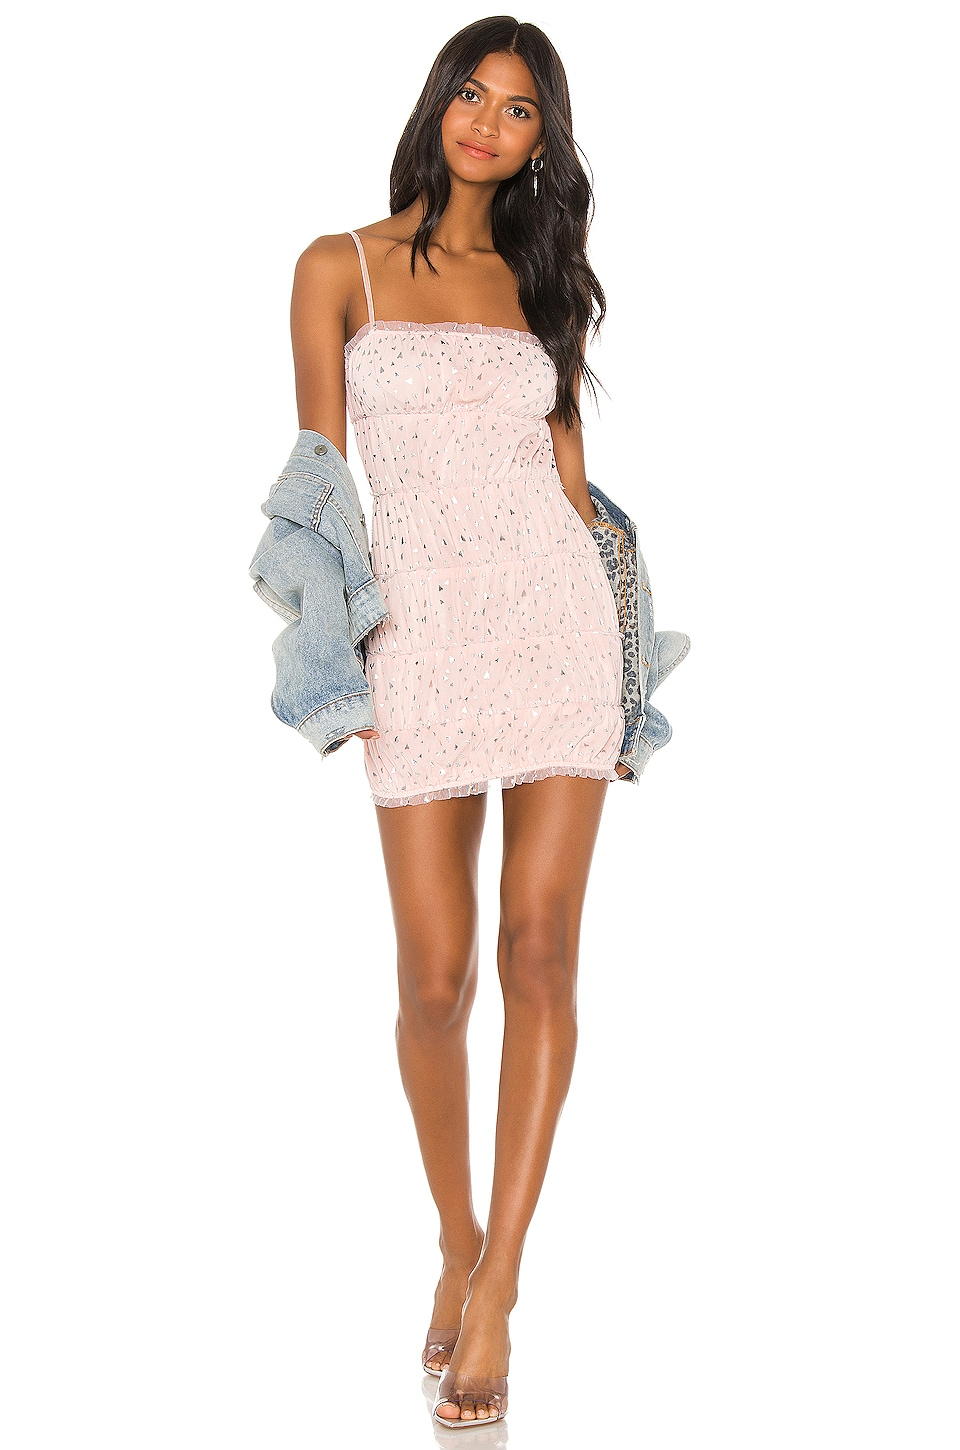 h:ours Bruno Mini Dress in Silver Hearts